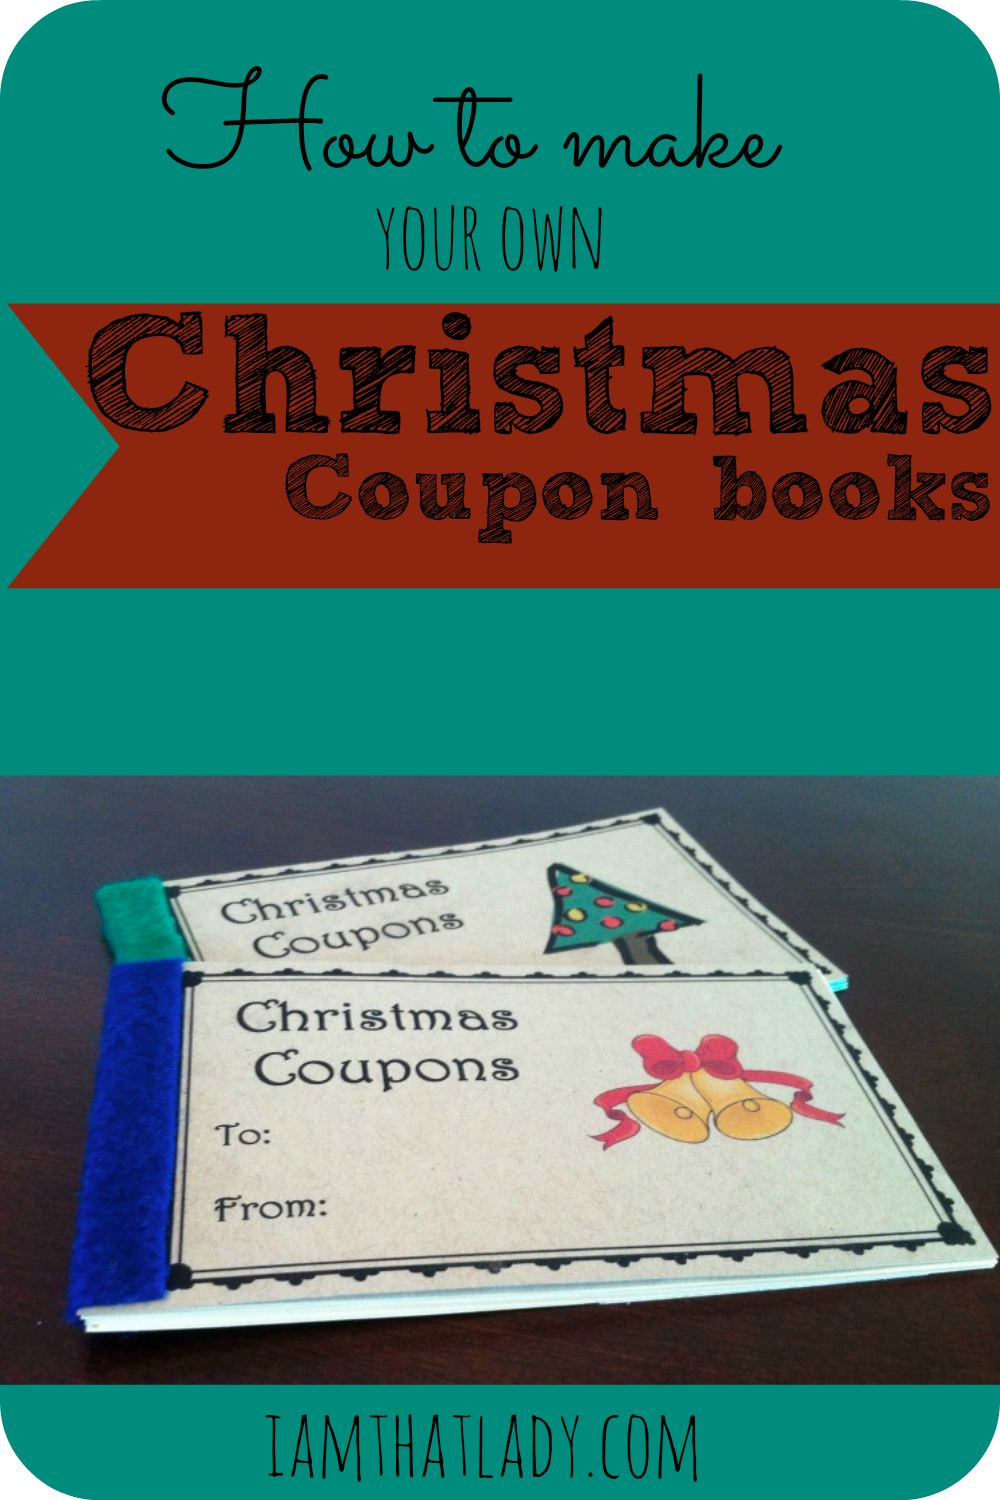 FREE Make Your Own Christmas Coupon Book  Print Your Own Voucher